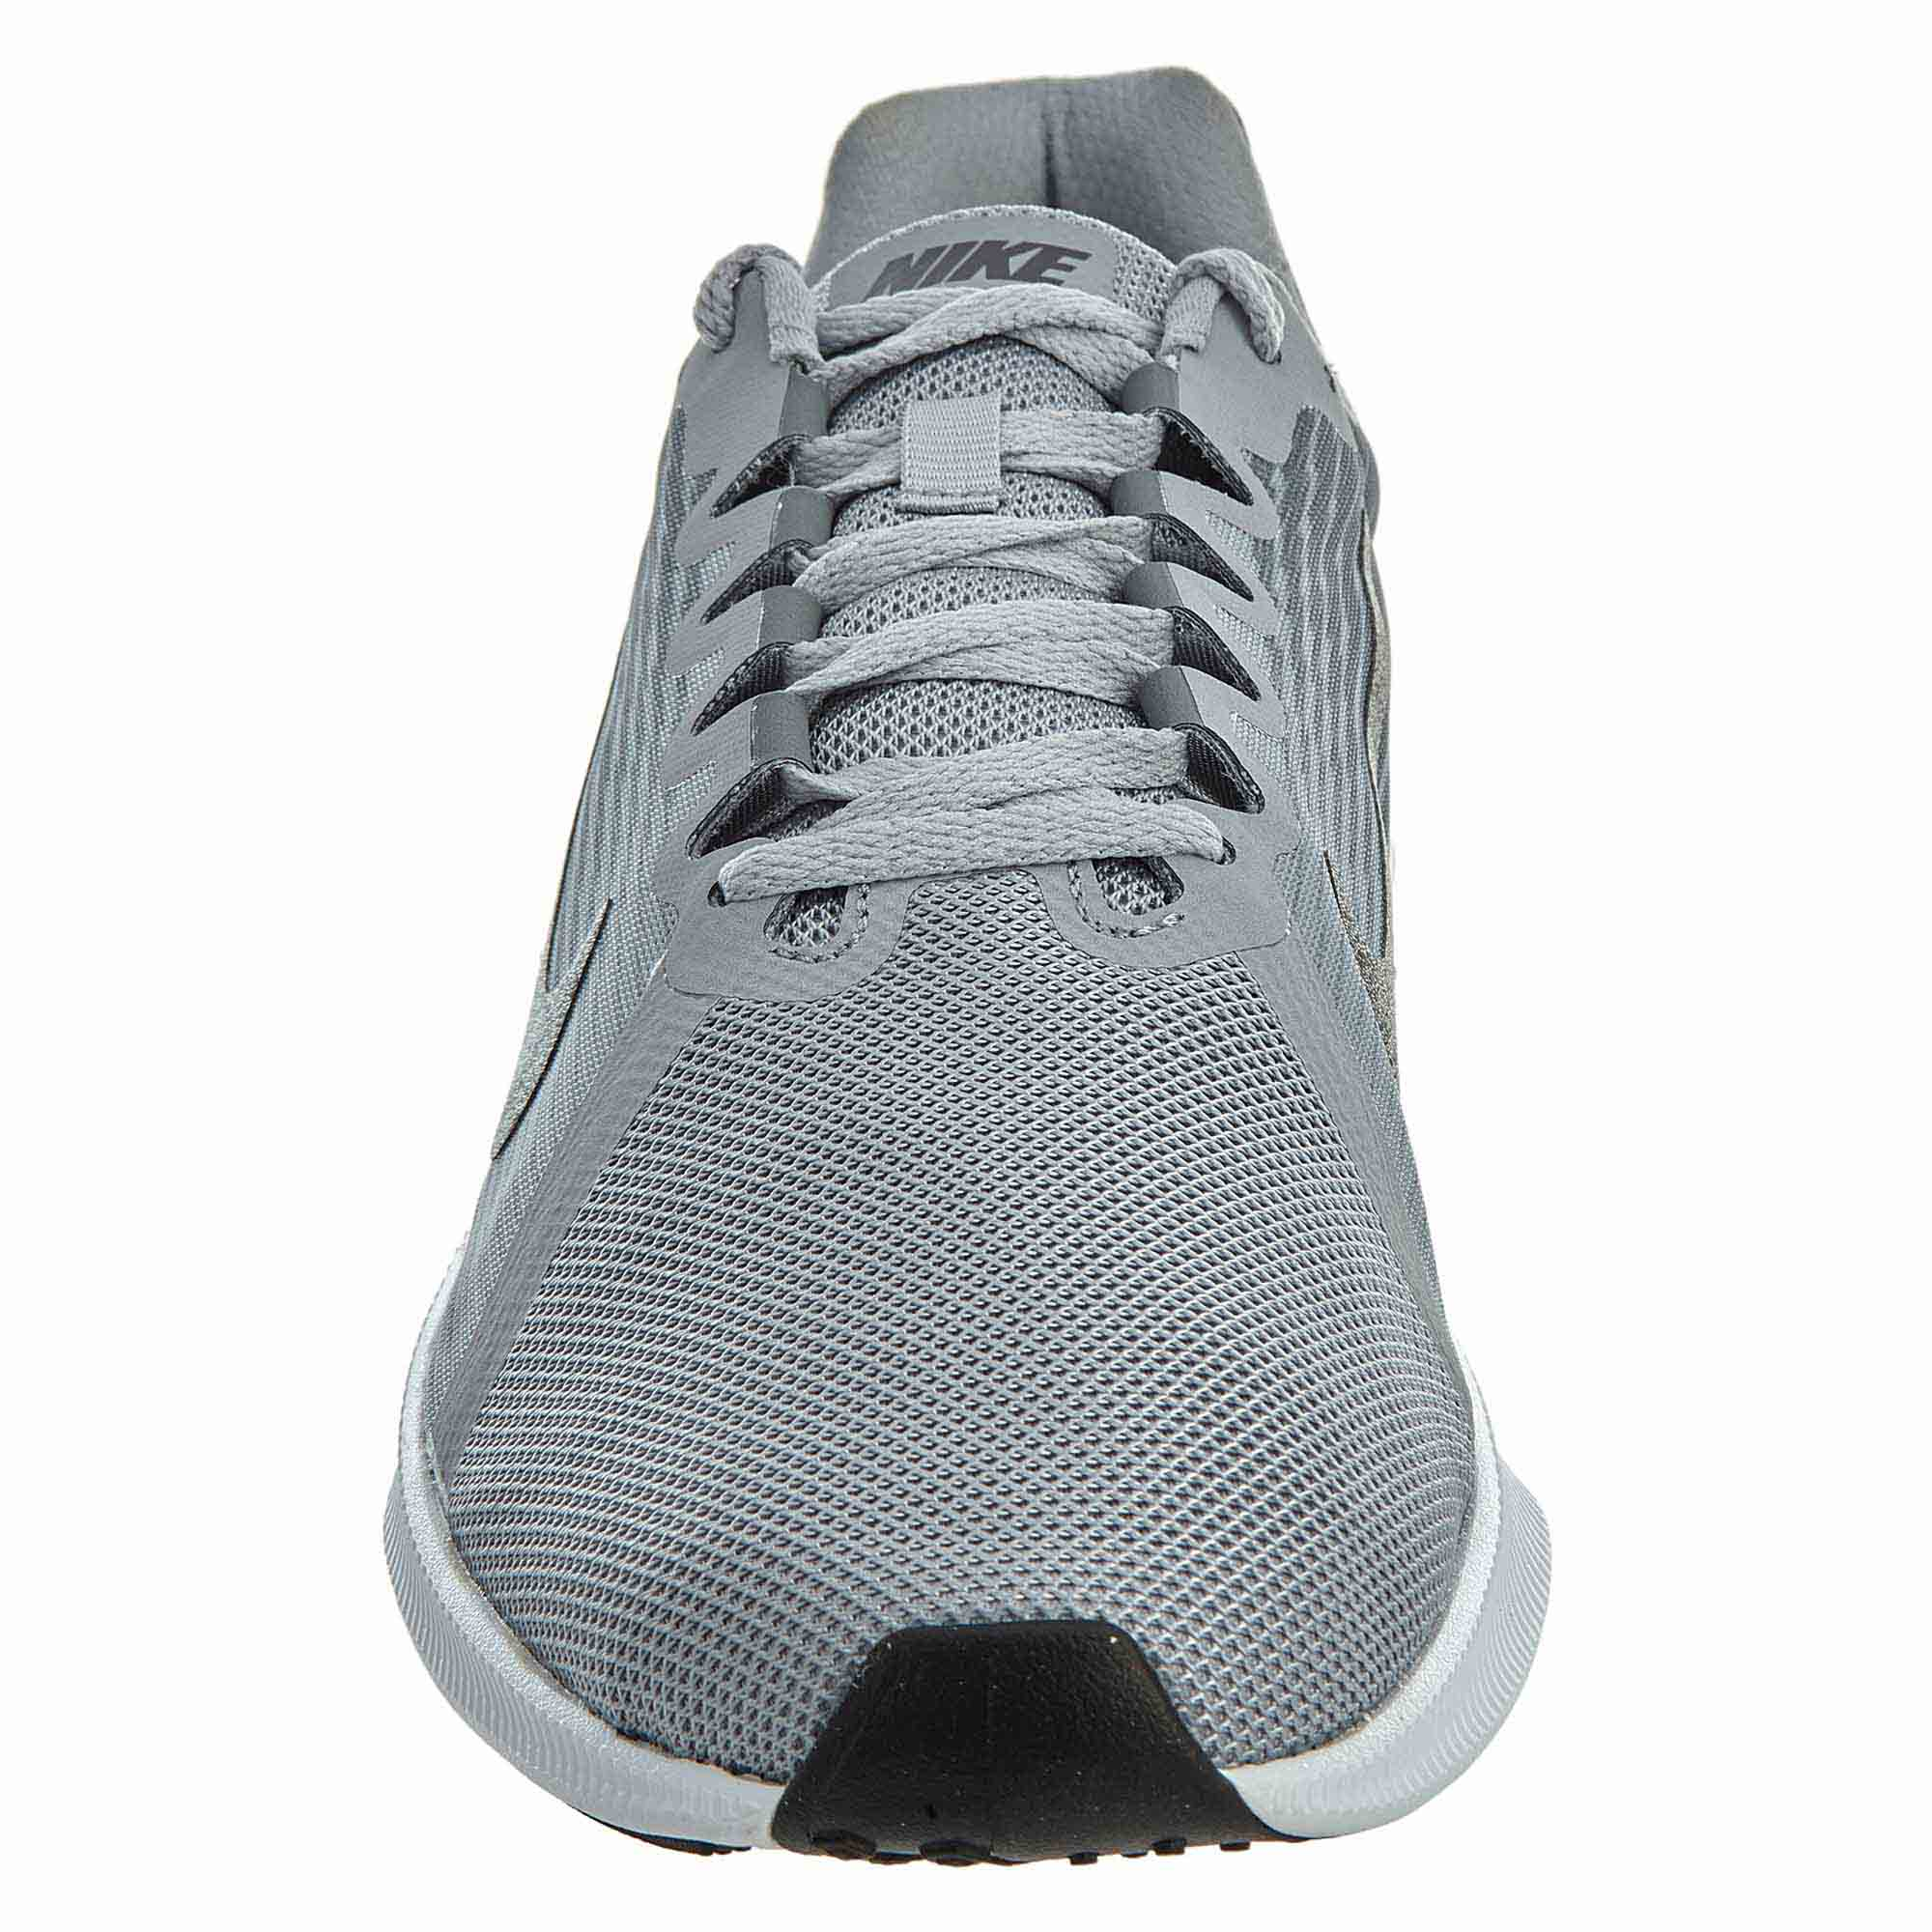 56361861a6dd Nike Mens Downshifter 8 Running Shoes 908984-004